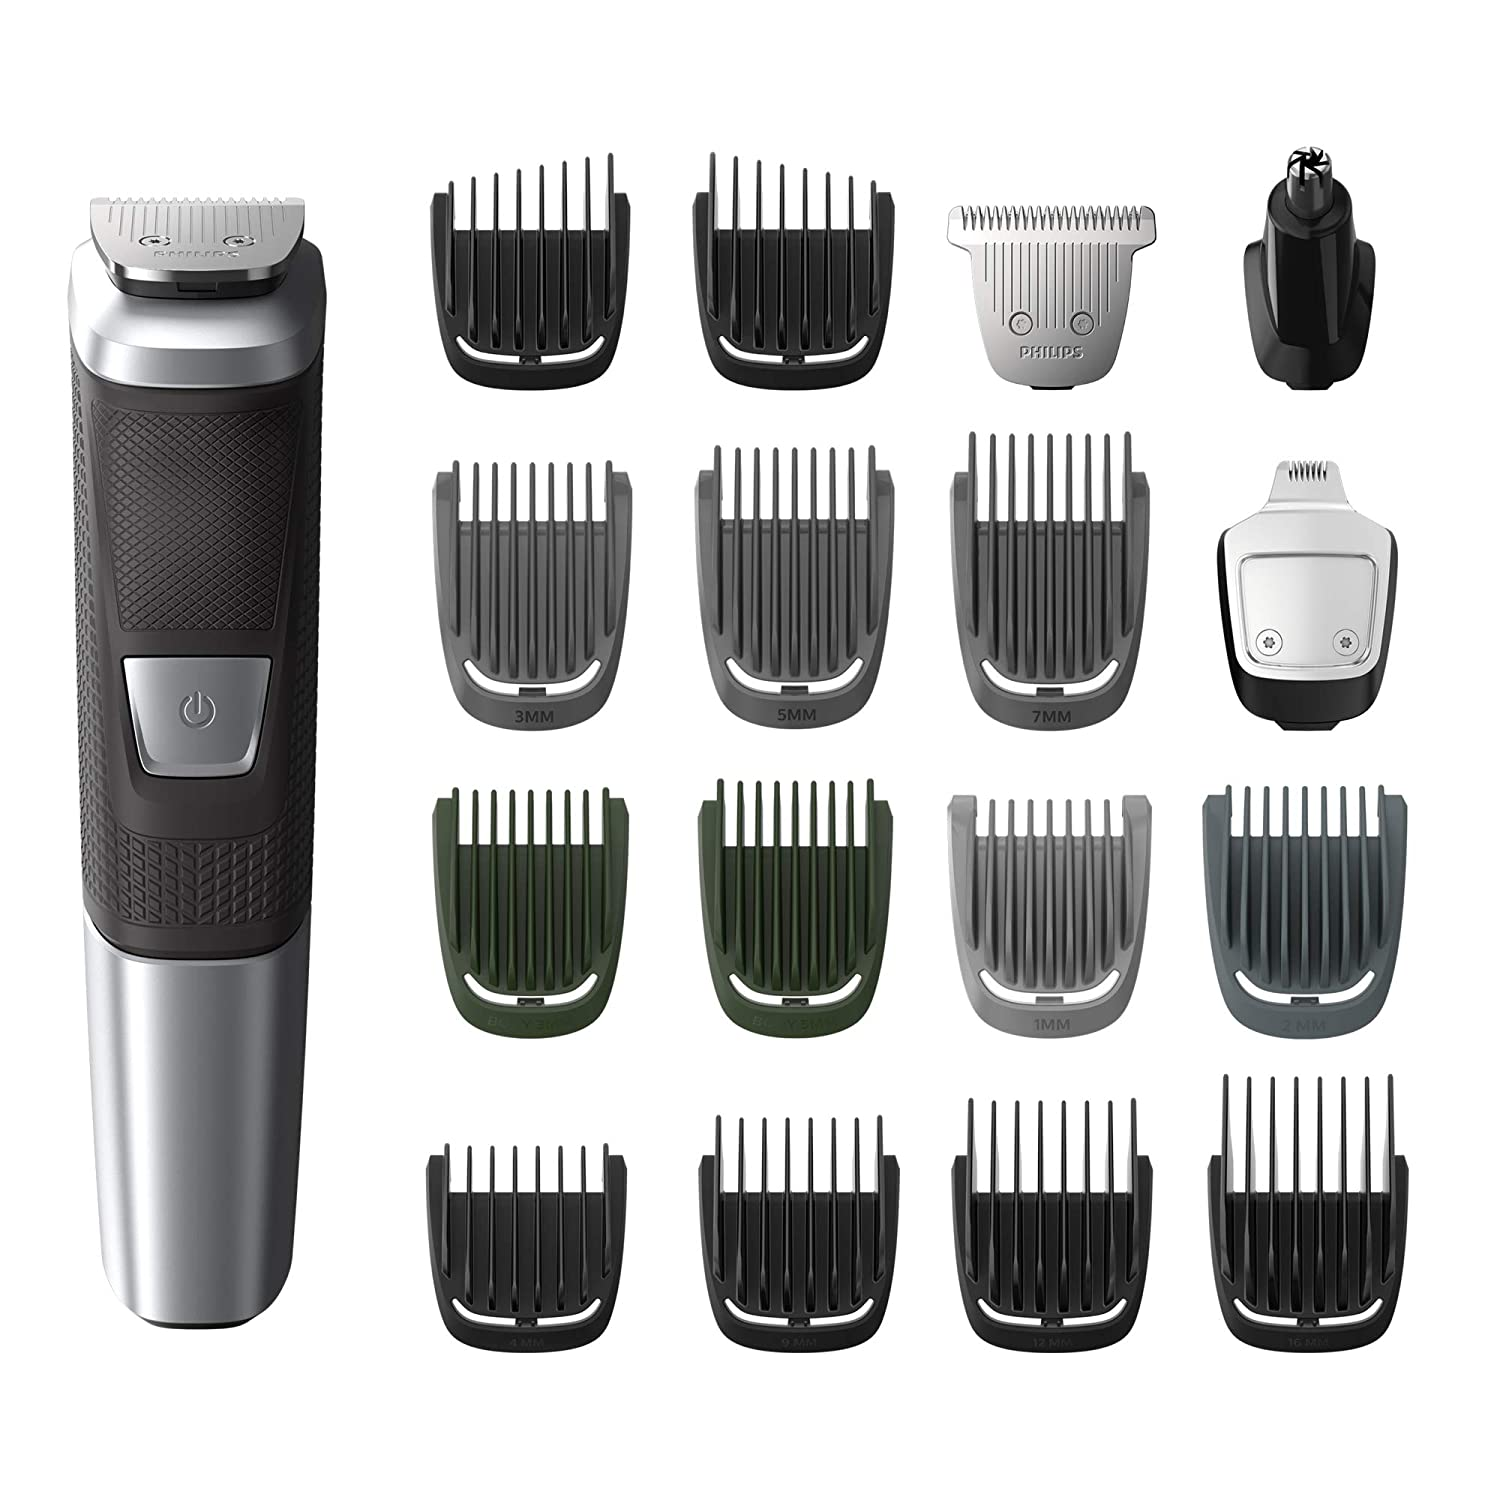 Philips Norelco MG5750 Multigroom All-In-One Trimmer